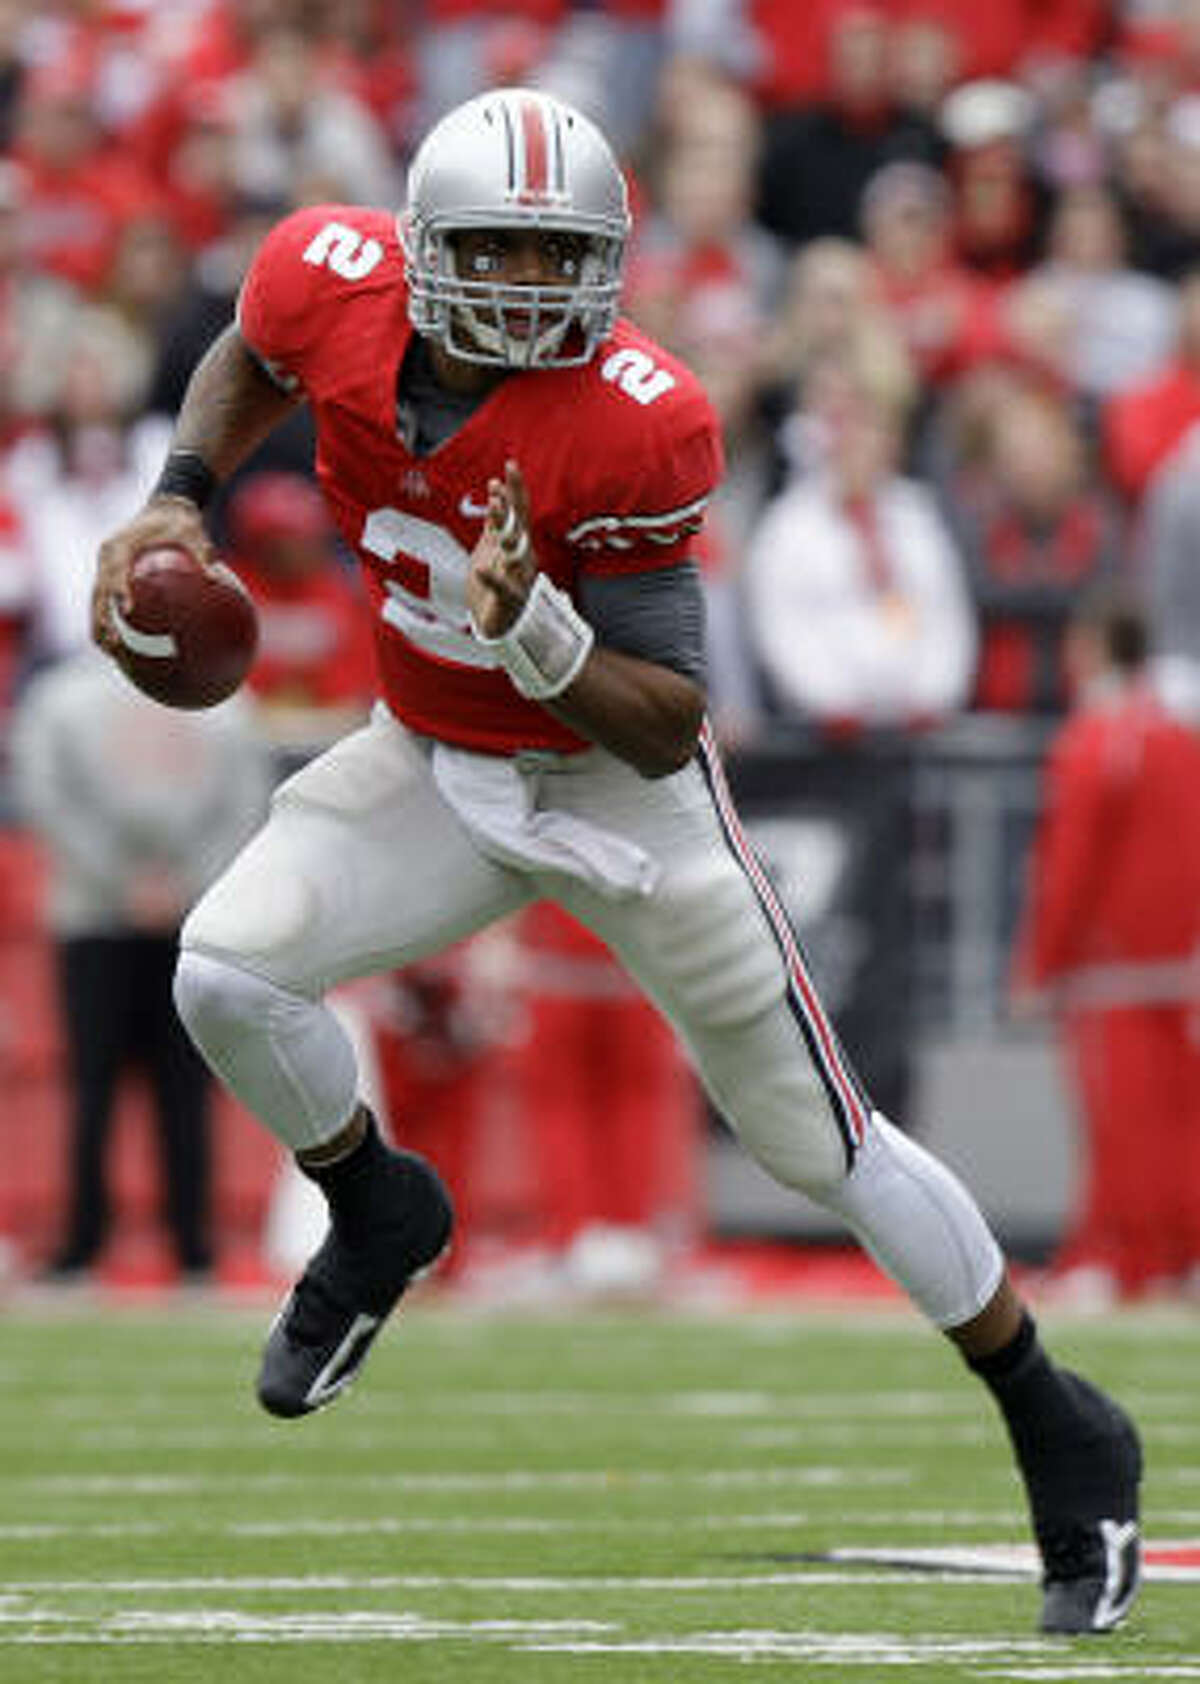 Terrelle Pryor, Ohio State He's been compared to Vince Young since high school, and he could be ready to start playing like the former Texas star.